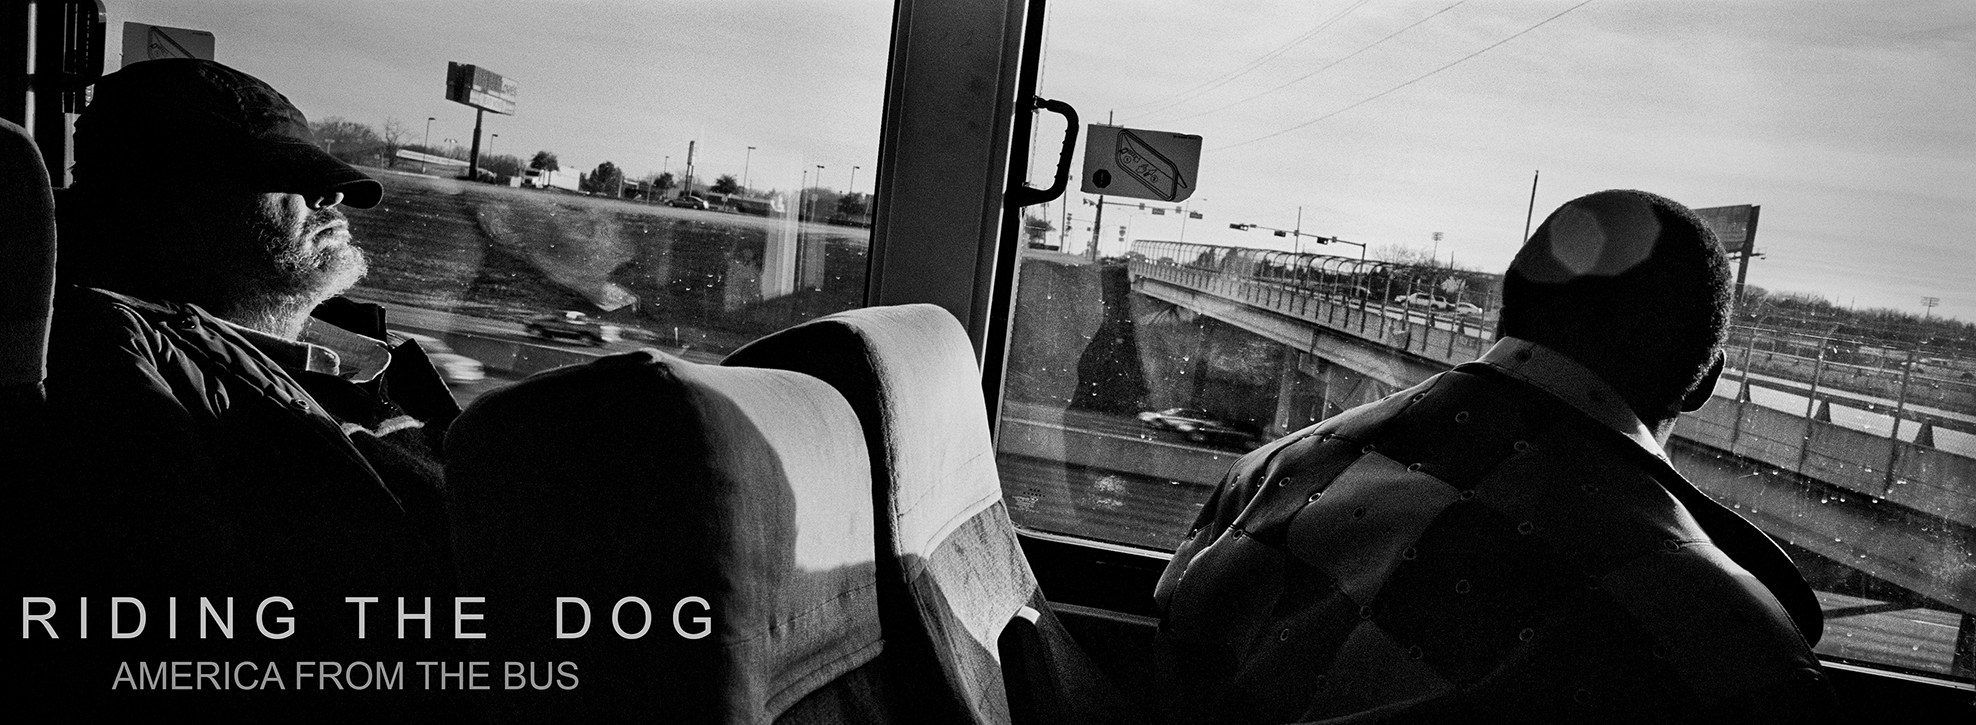 Before airplanes became the primary means of long-distance travel in the United States, people relied mainly on the countries railroads and interstate buses. This project focuses on Greyhound buses and thier routes, which continue to provide access to nearly every part of the country. This ongoing project is both a survey of America's landscape and people, as well as a personal document of my own travels.Music: Erin Merle Wallace